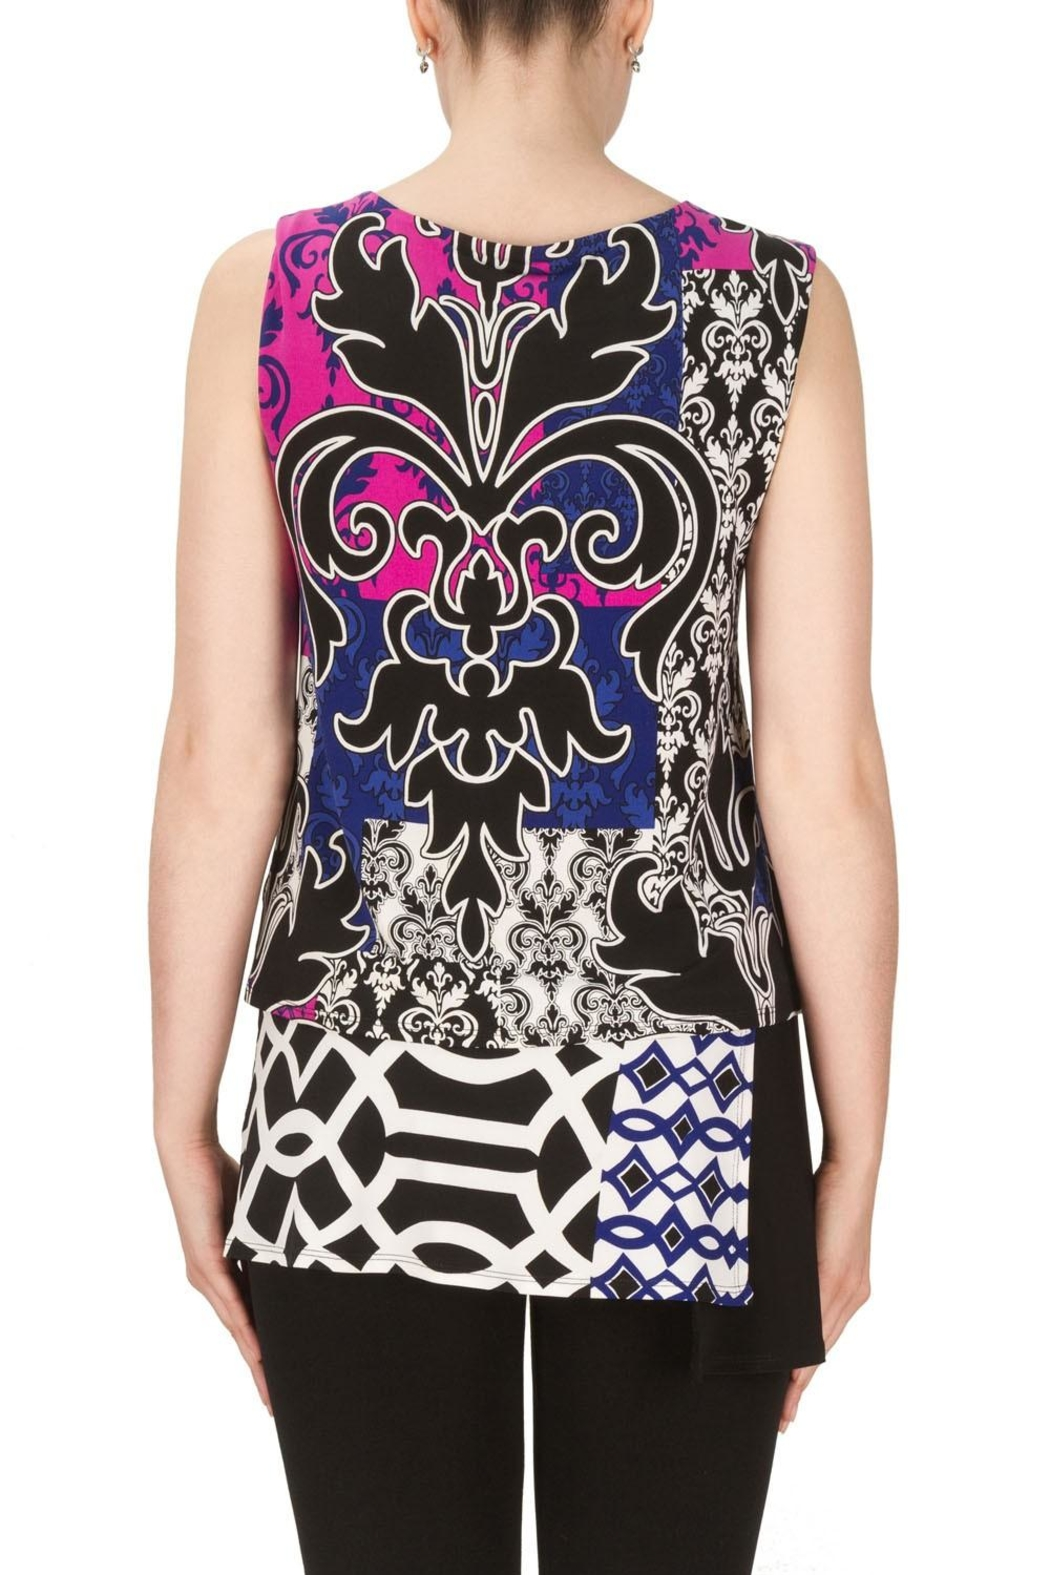 Joseph Ribkoff Nicole Patterned Top - Back Cropped Image